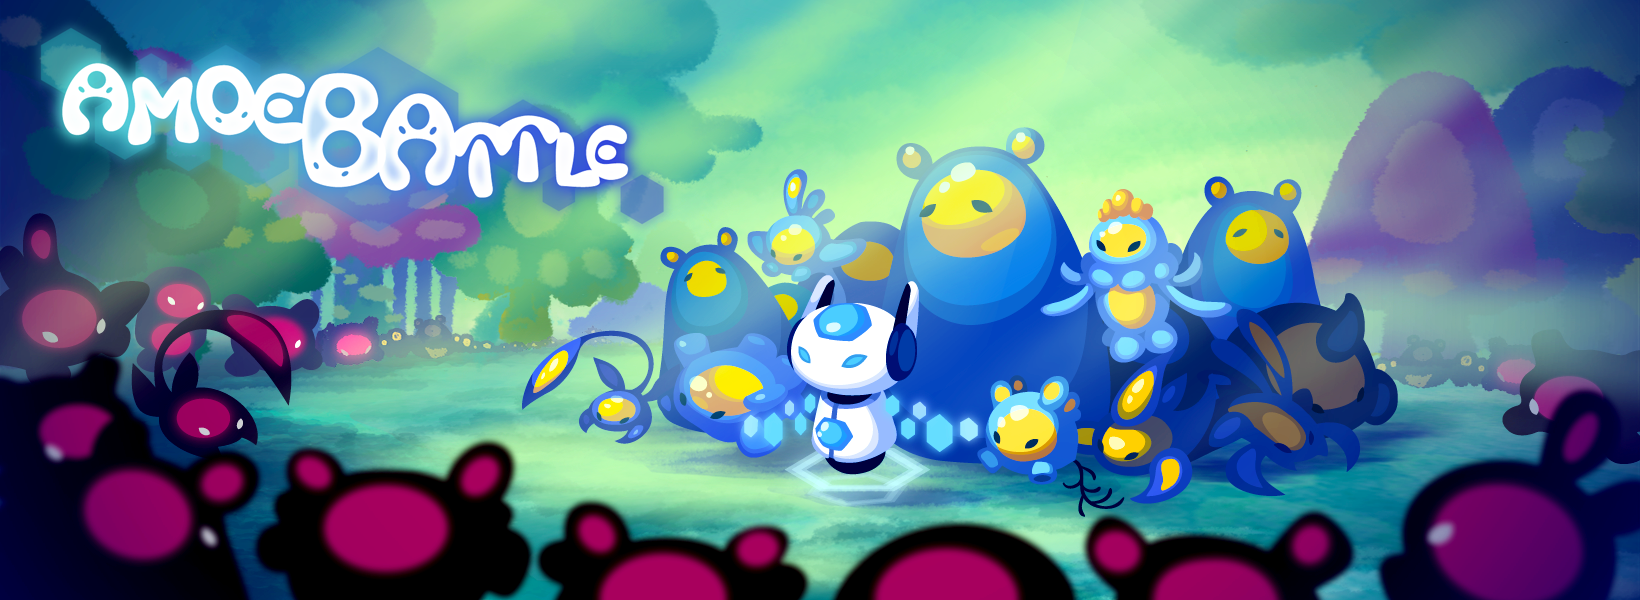 Key art for Amoebattle, showcased on the front page of the Apple App Store